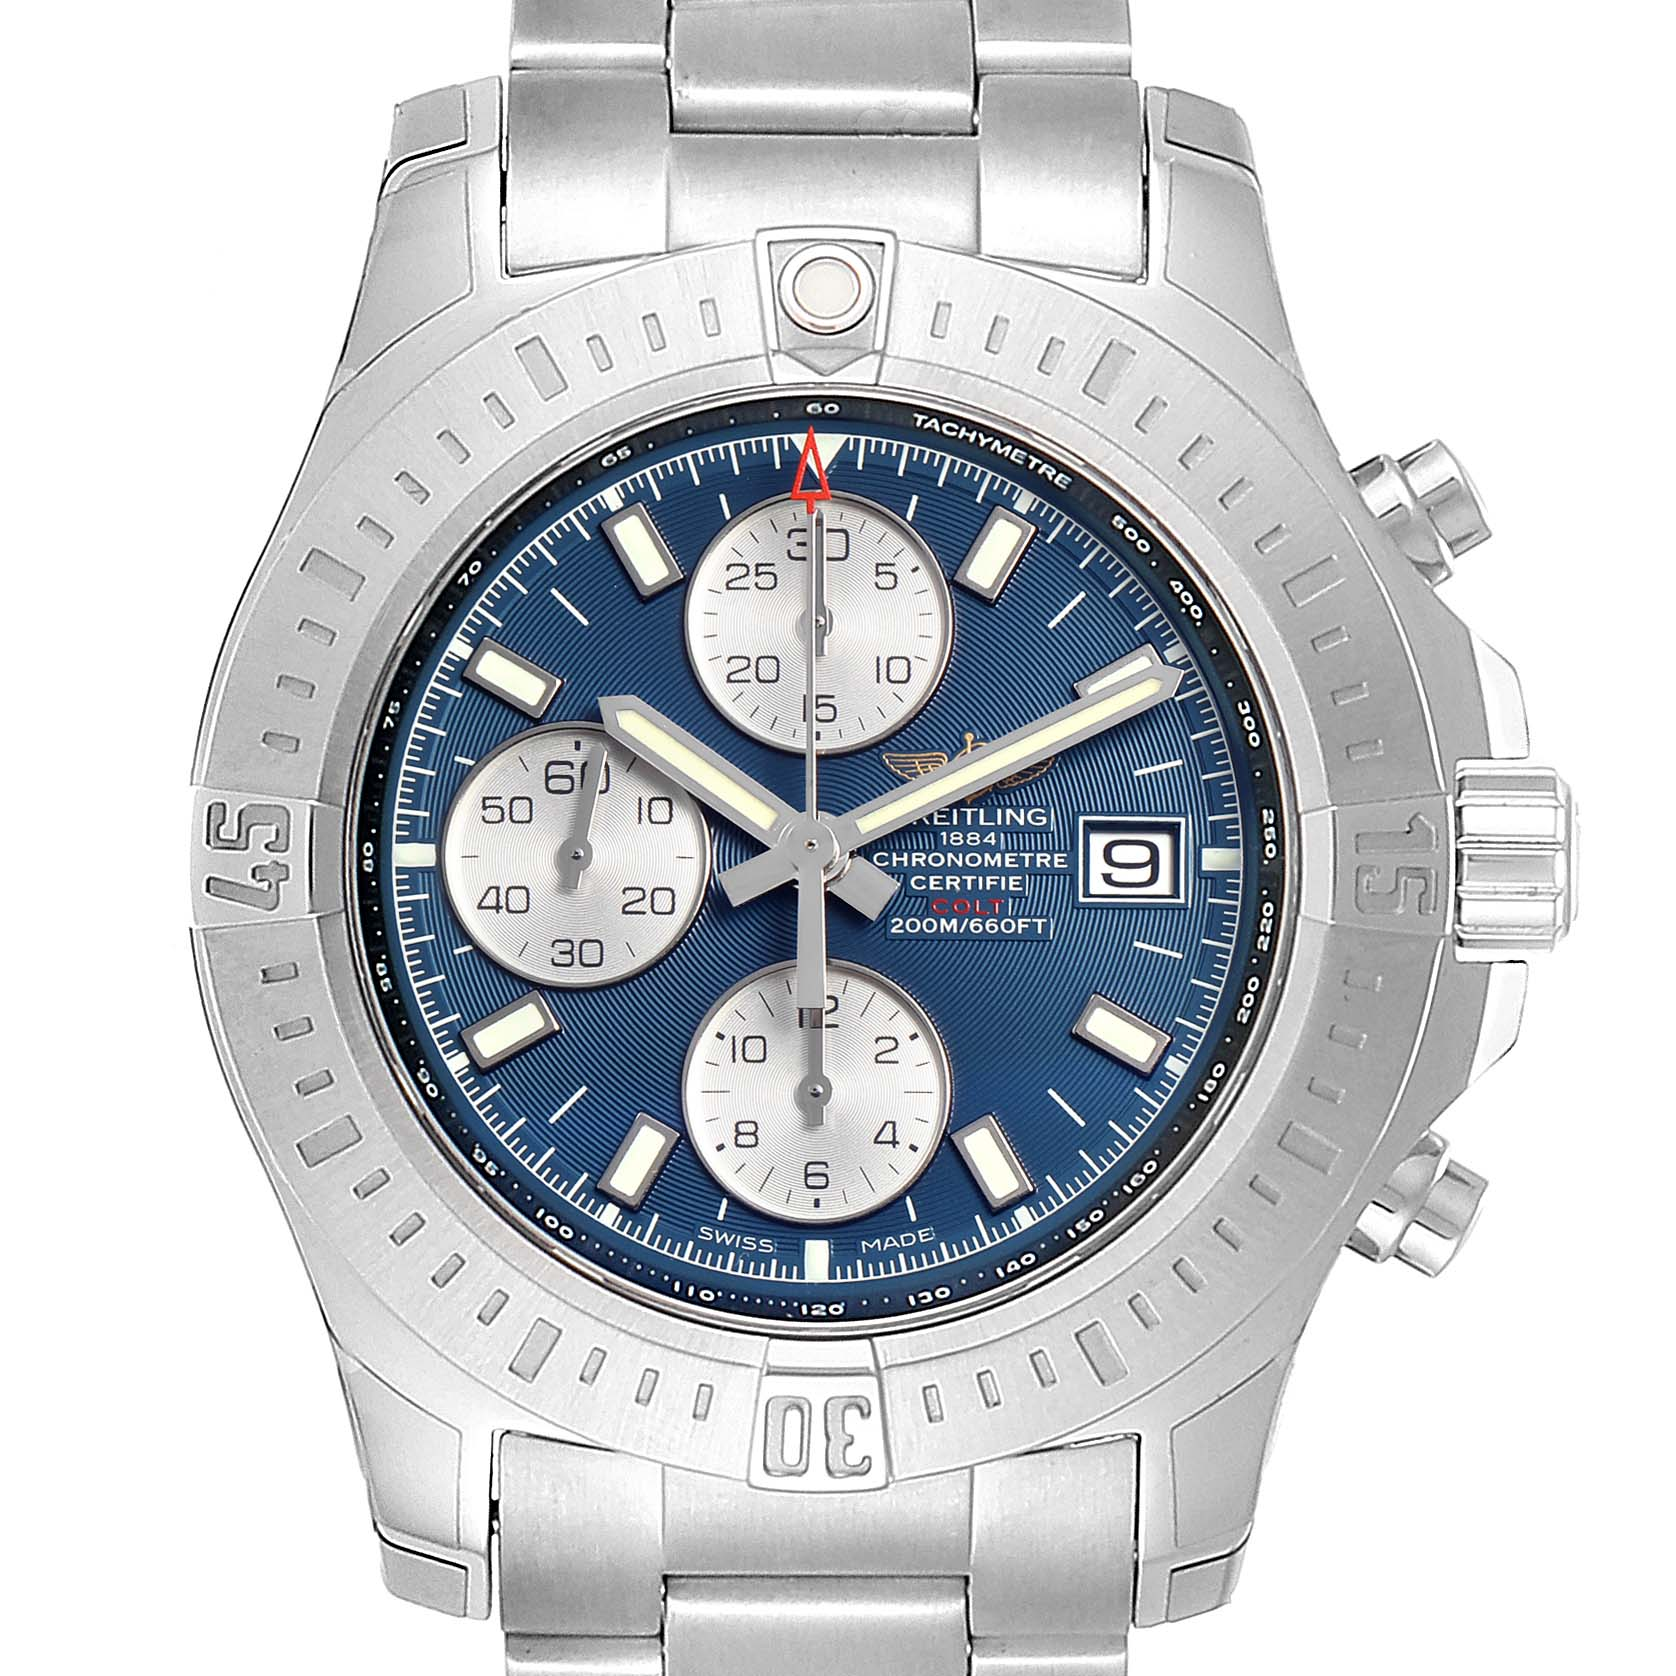 Breitling Colt Automatic Chronograph Blue Dial Watch A13388 Unworn